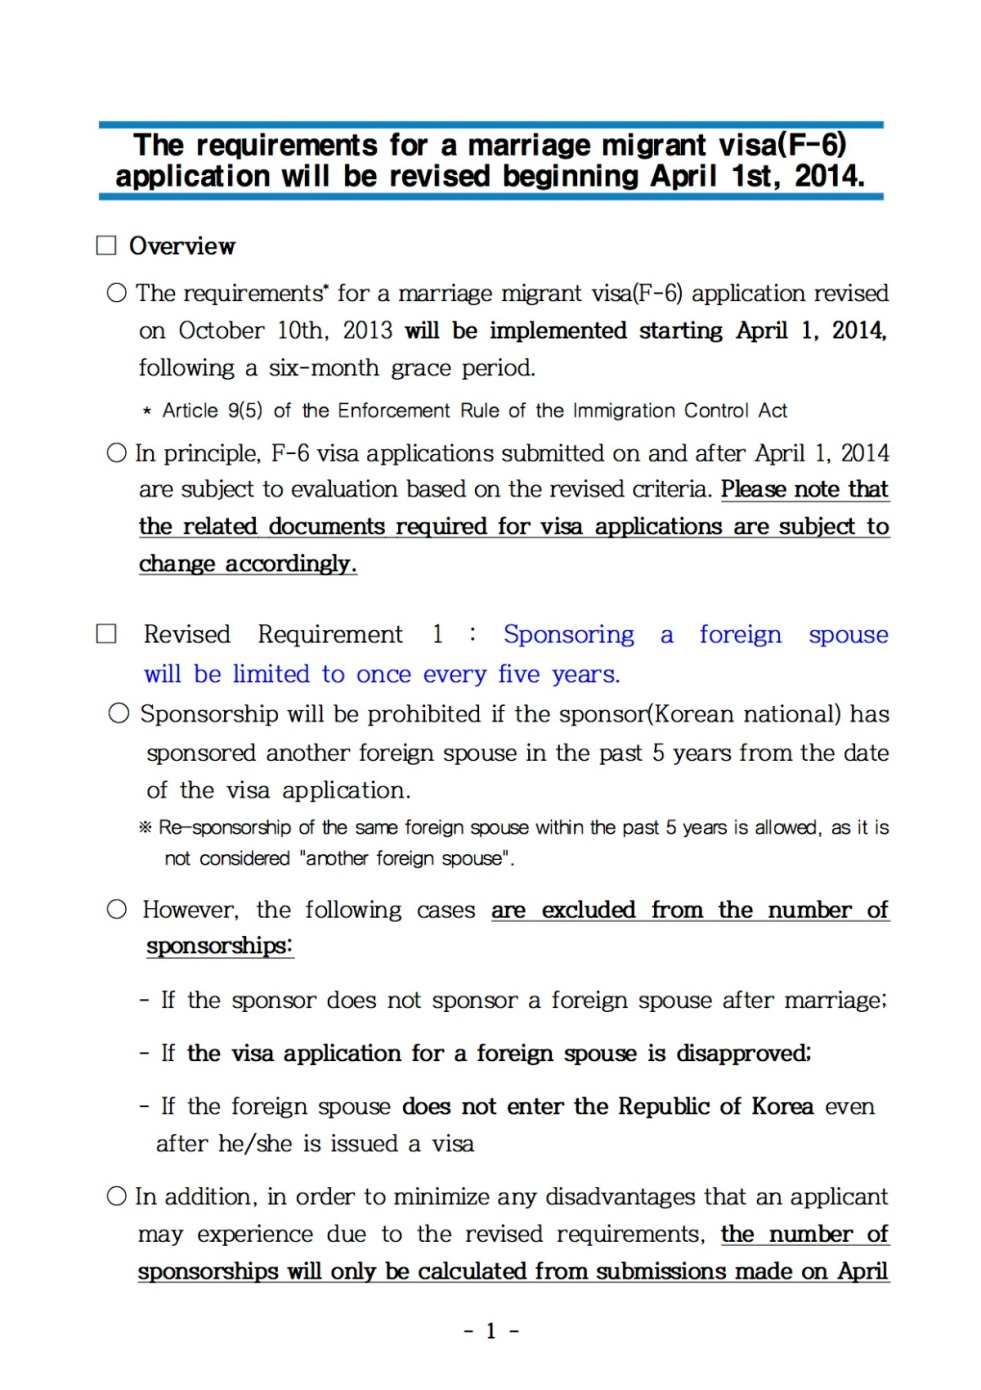 announcement-of-the-revised-requirments-for-spouse-visa-f-6-3